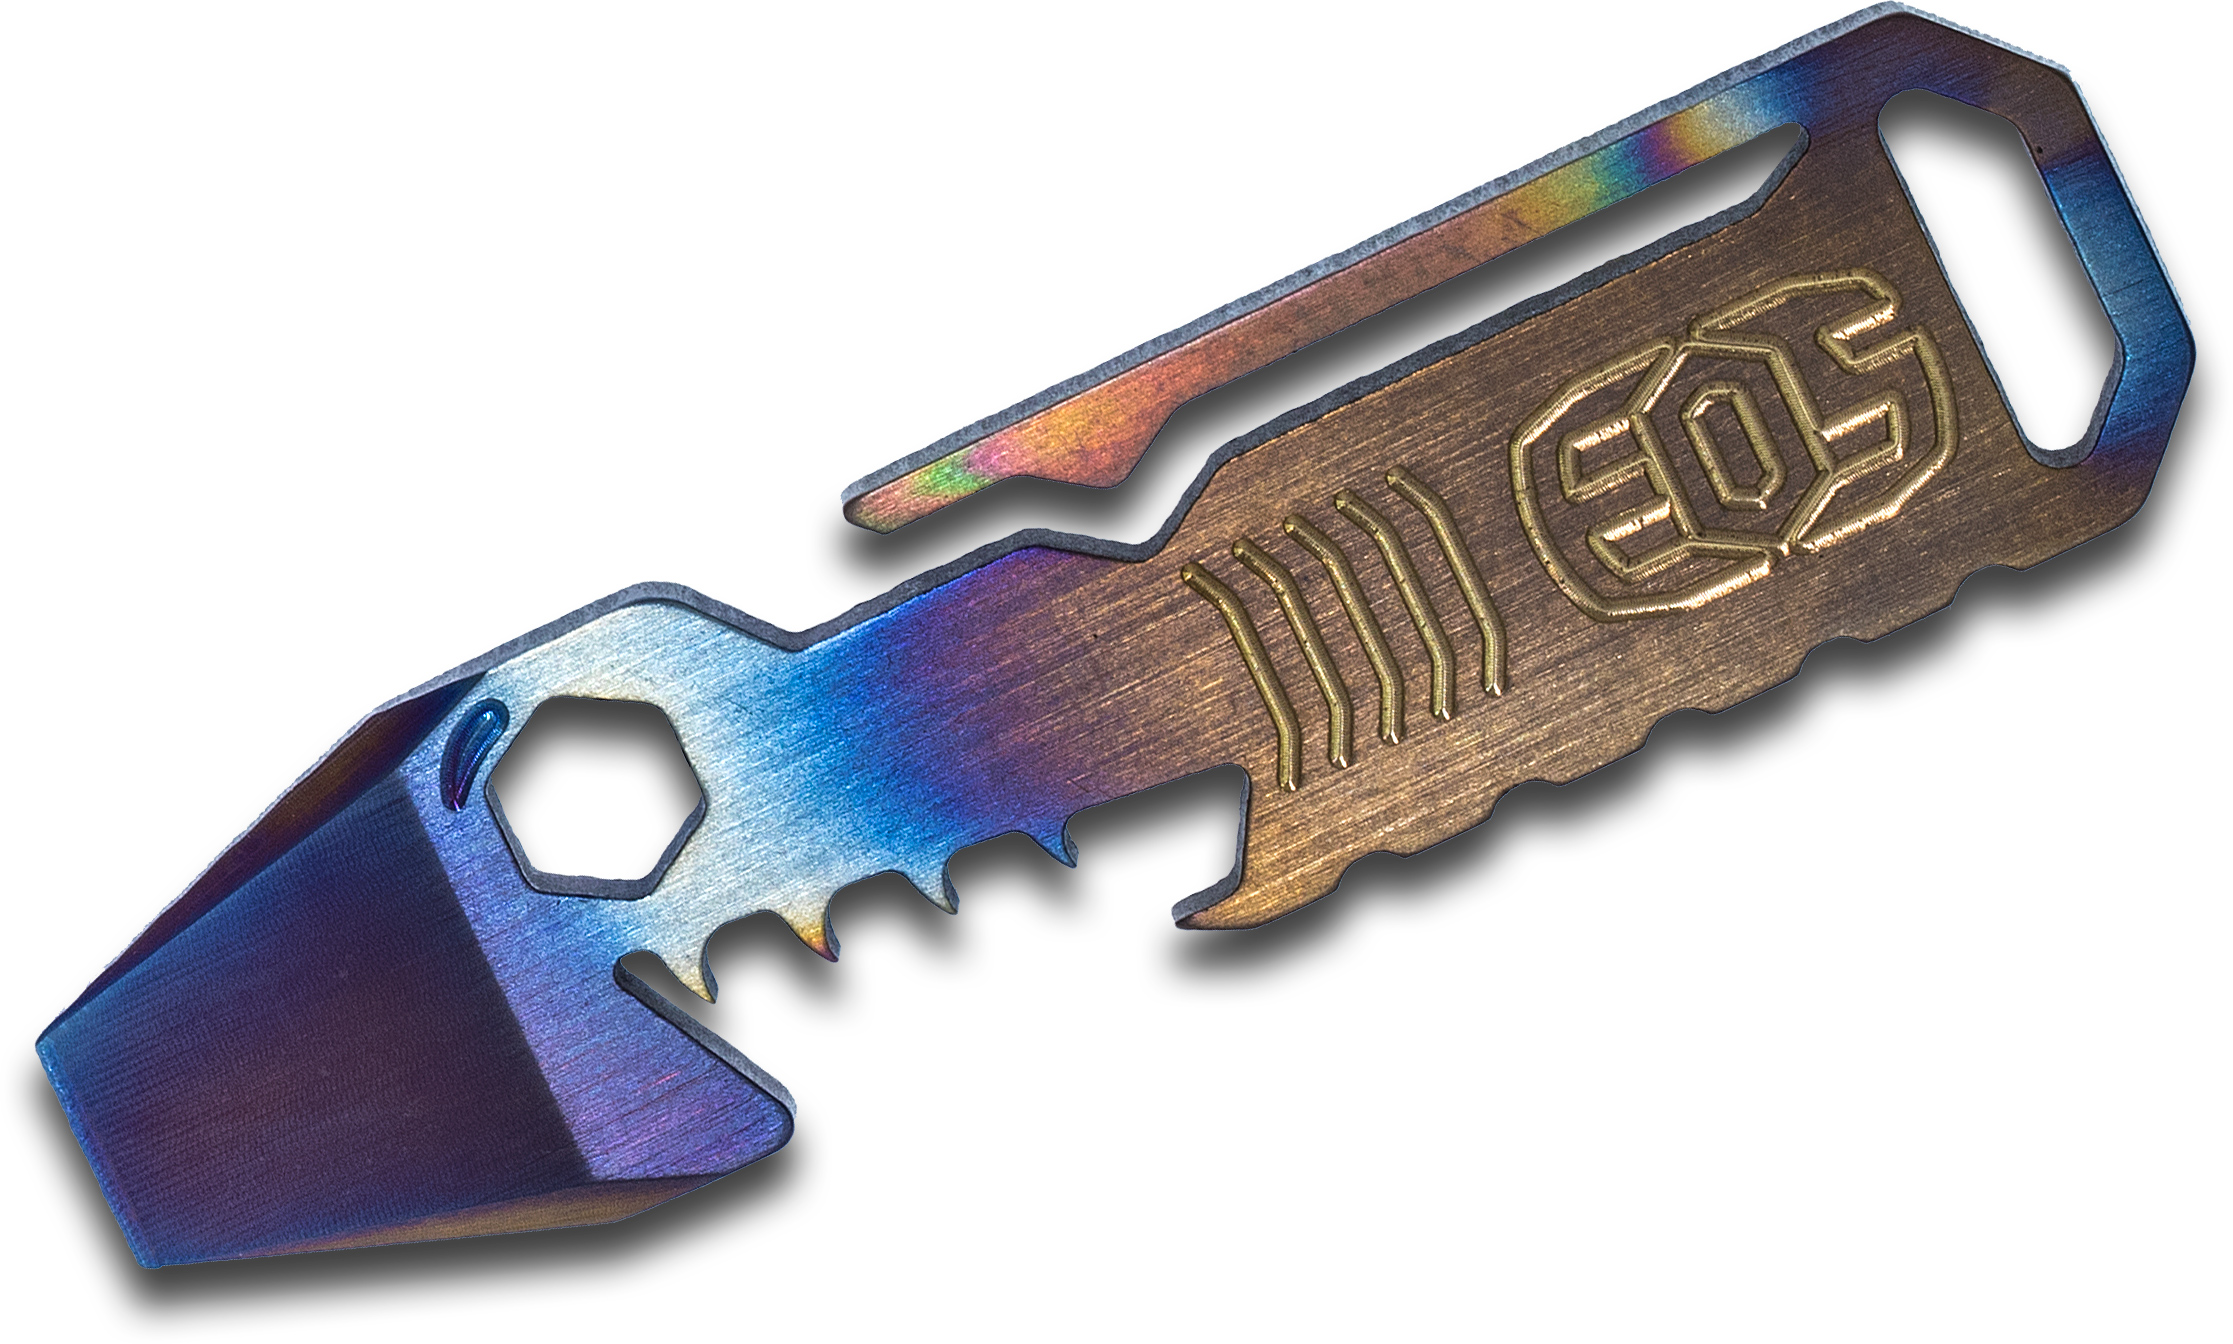 EOS Titanium Mini TiShark Pry Bar Multi-Tool, Flamed